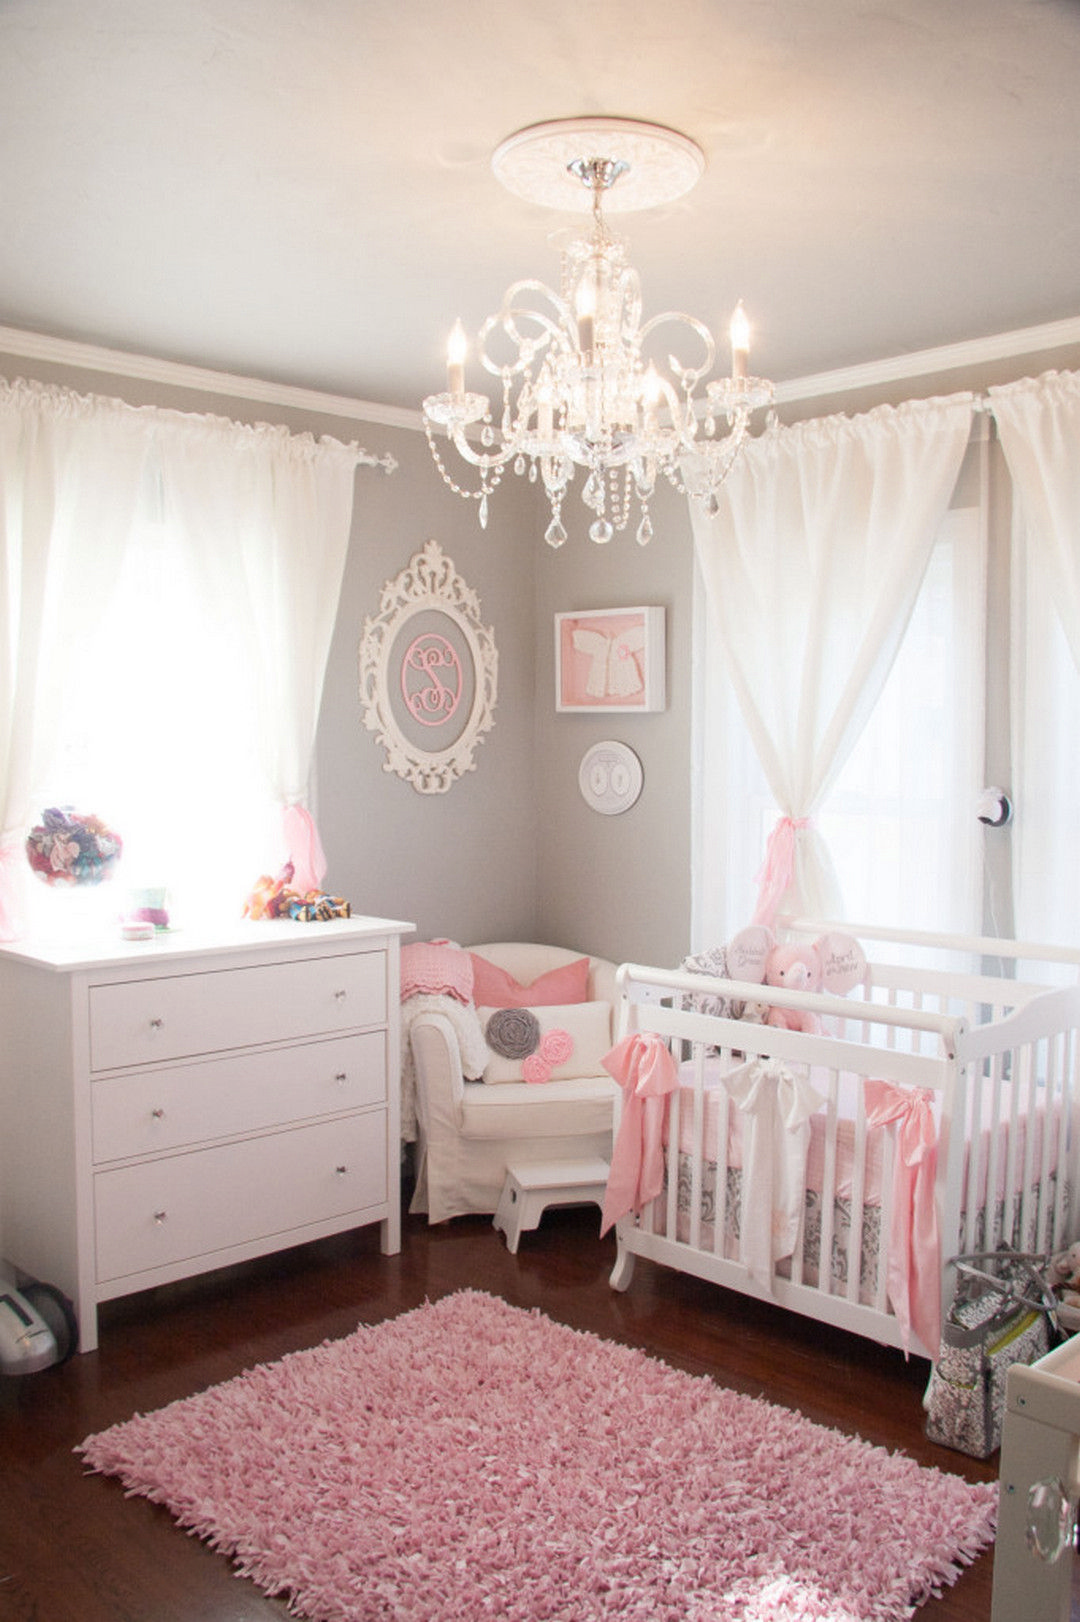 31 Cute Baby Nursery Ideas Https Www Futuristarchitecture